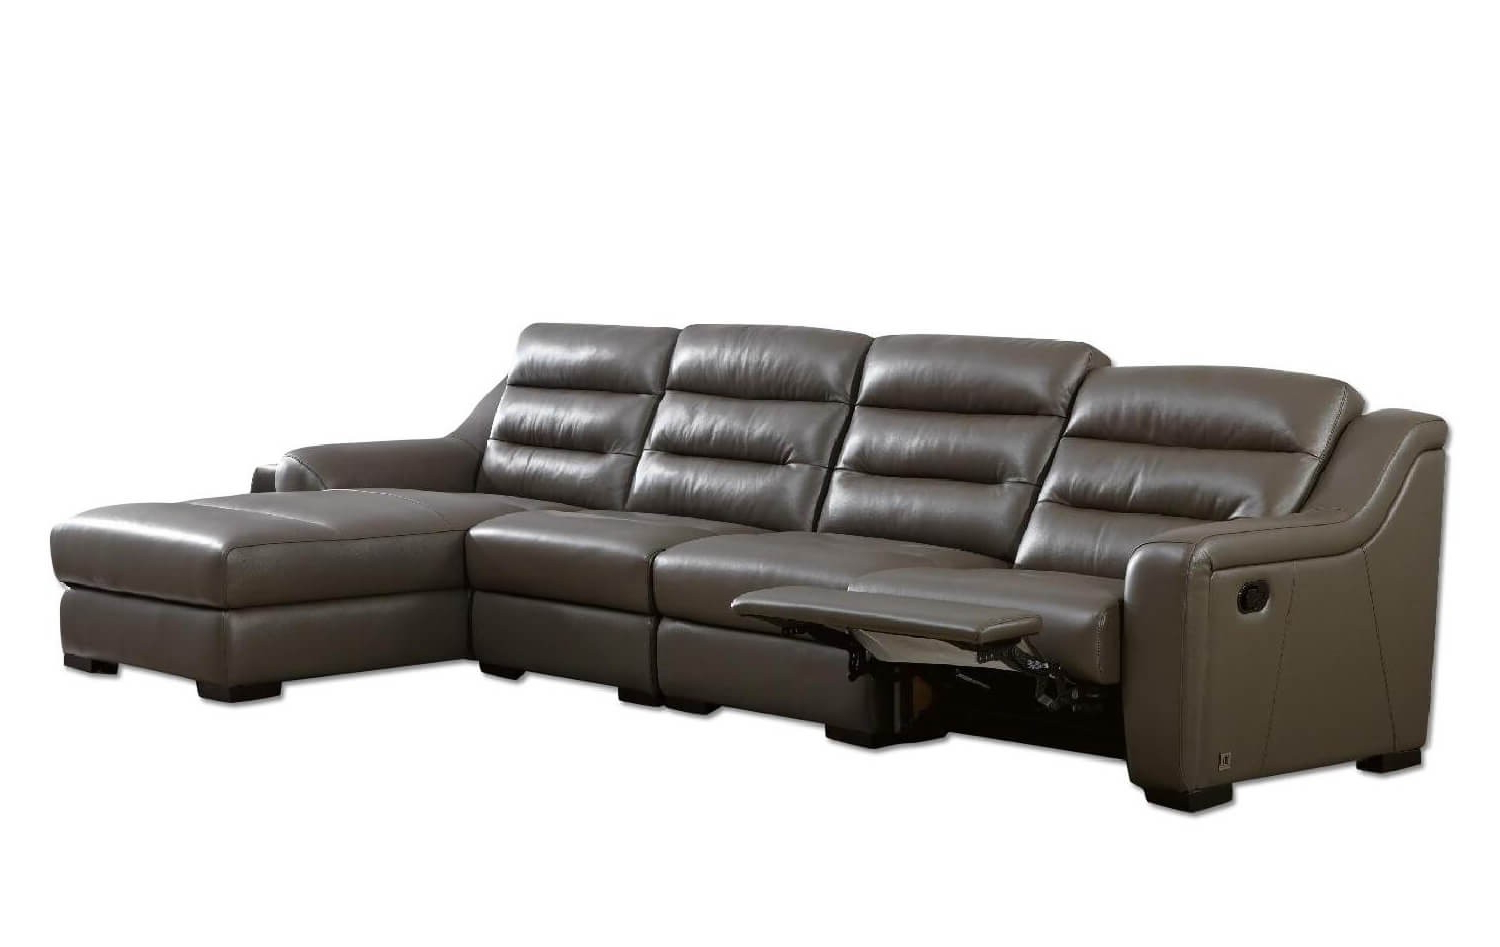 Fashionable Ludlow Top Grain Leather Match Reclining Sectional, Right Pertaining To Copenhagen Reclining Sectional Sofas With Right Storage Chaise (View 20 of 20)